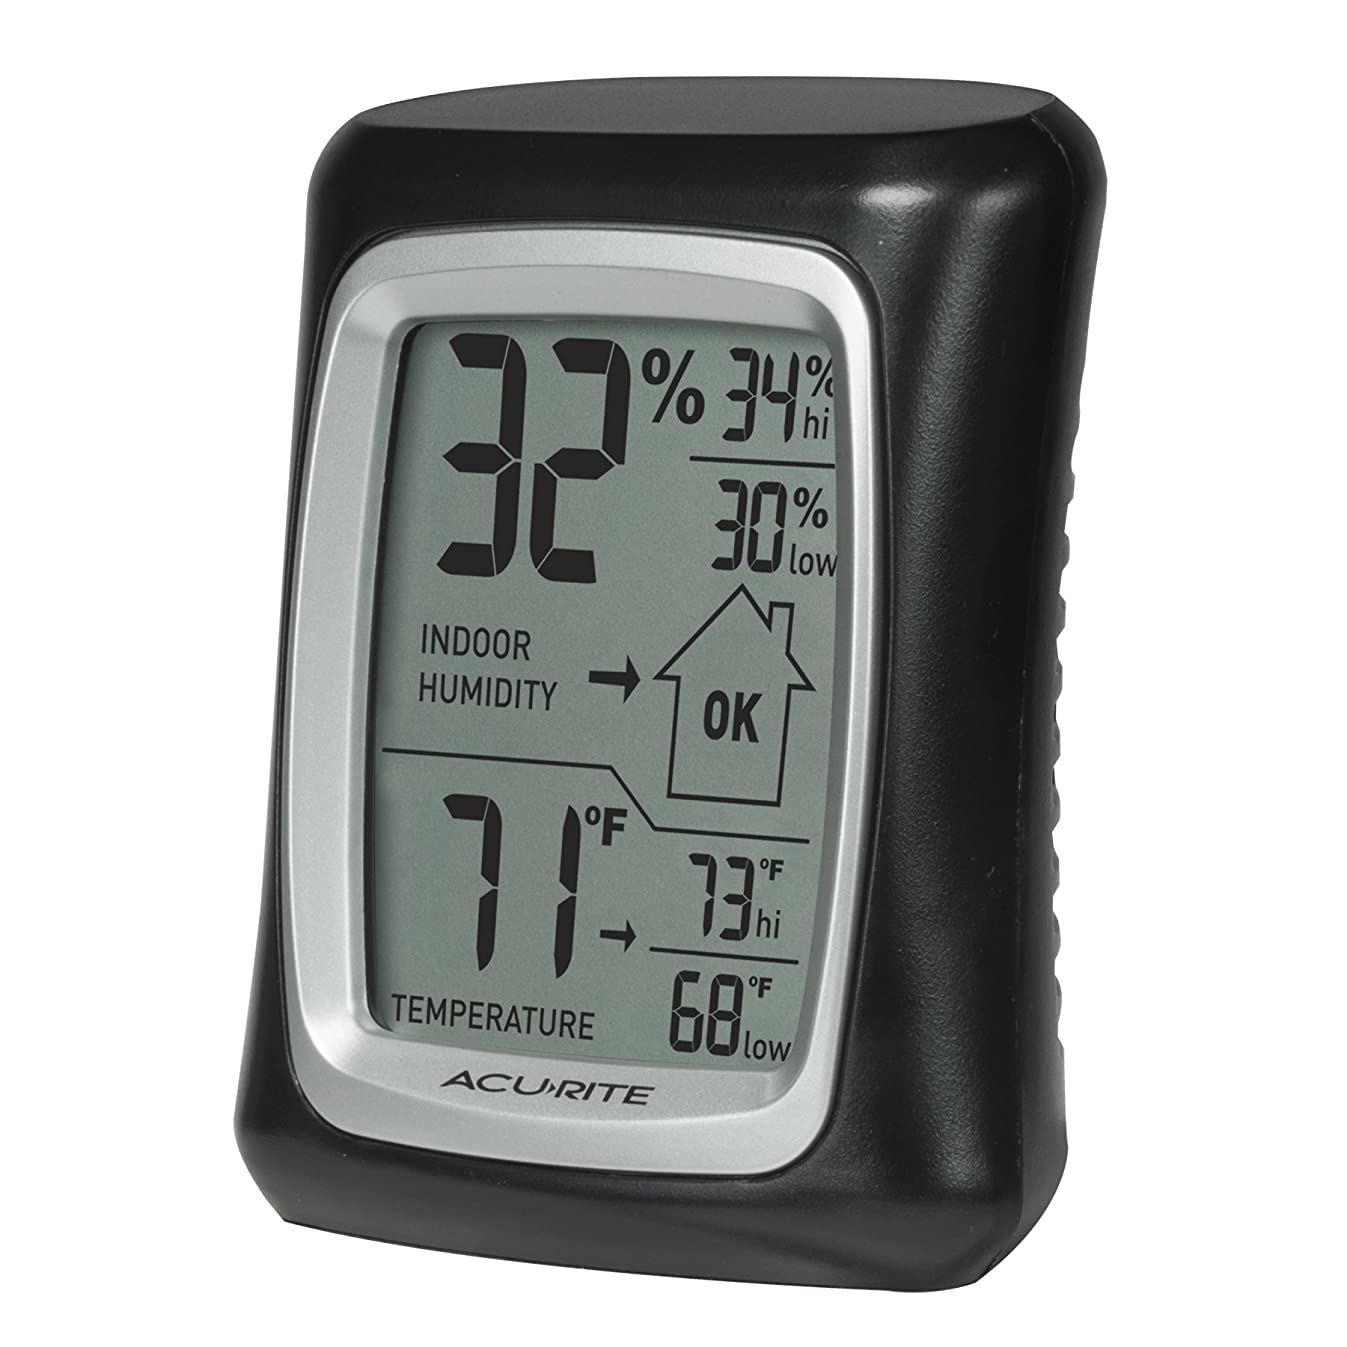 AcuRite 00325 Indoor Thermometer & Hygrometer with Humidity Gauge, Black